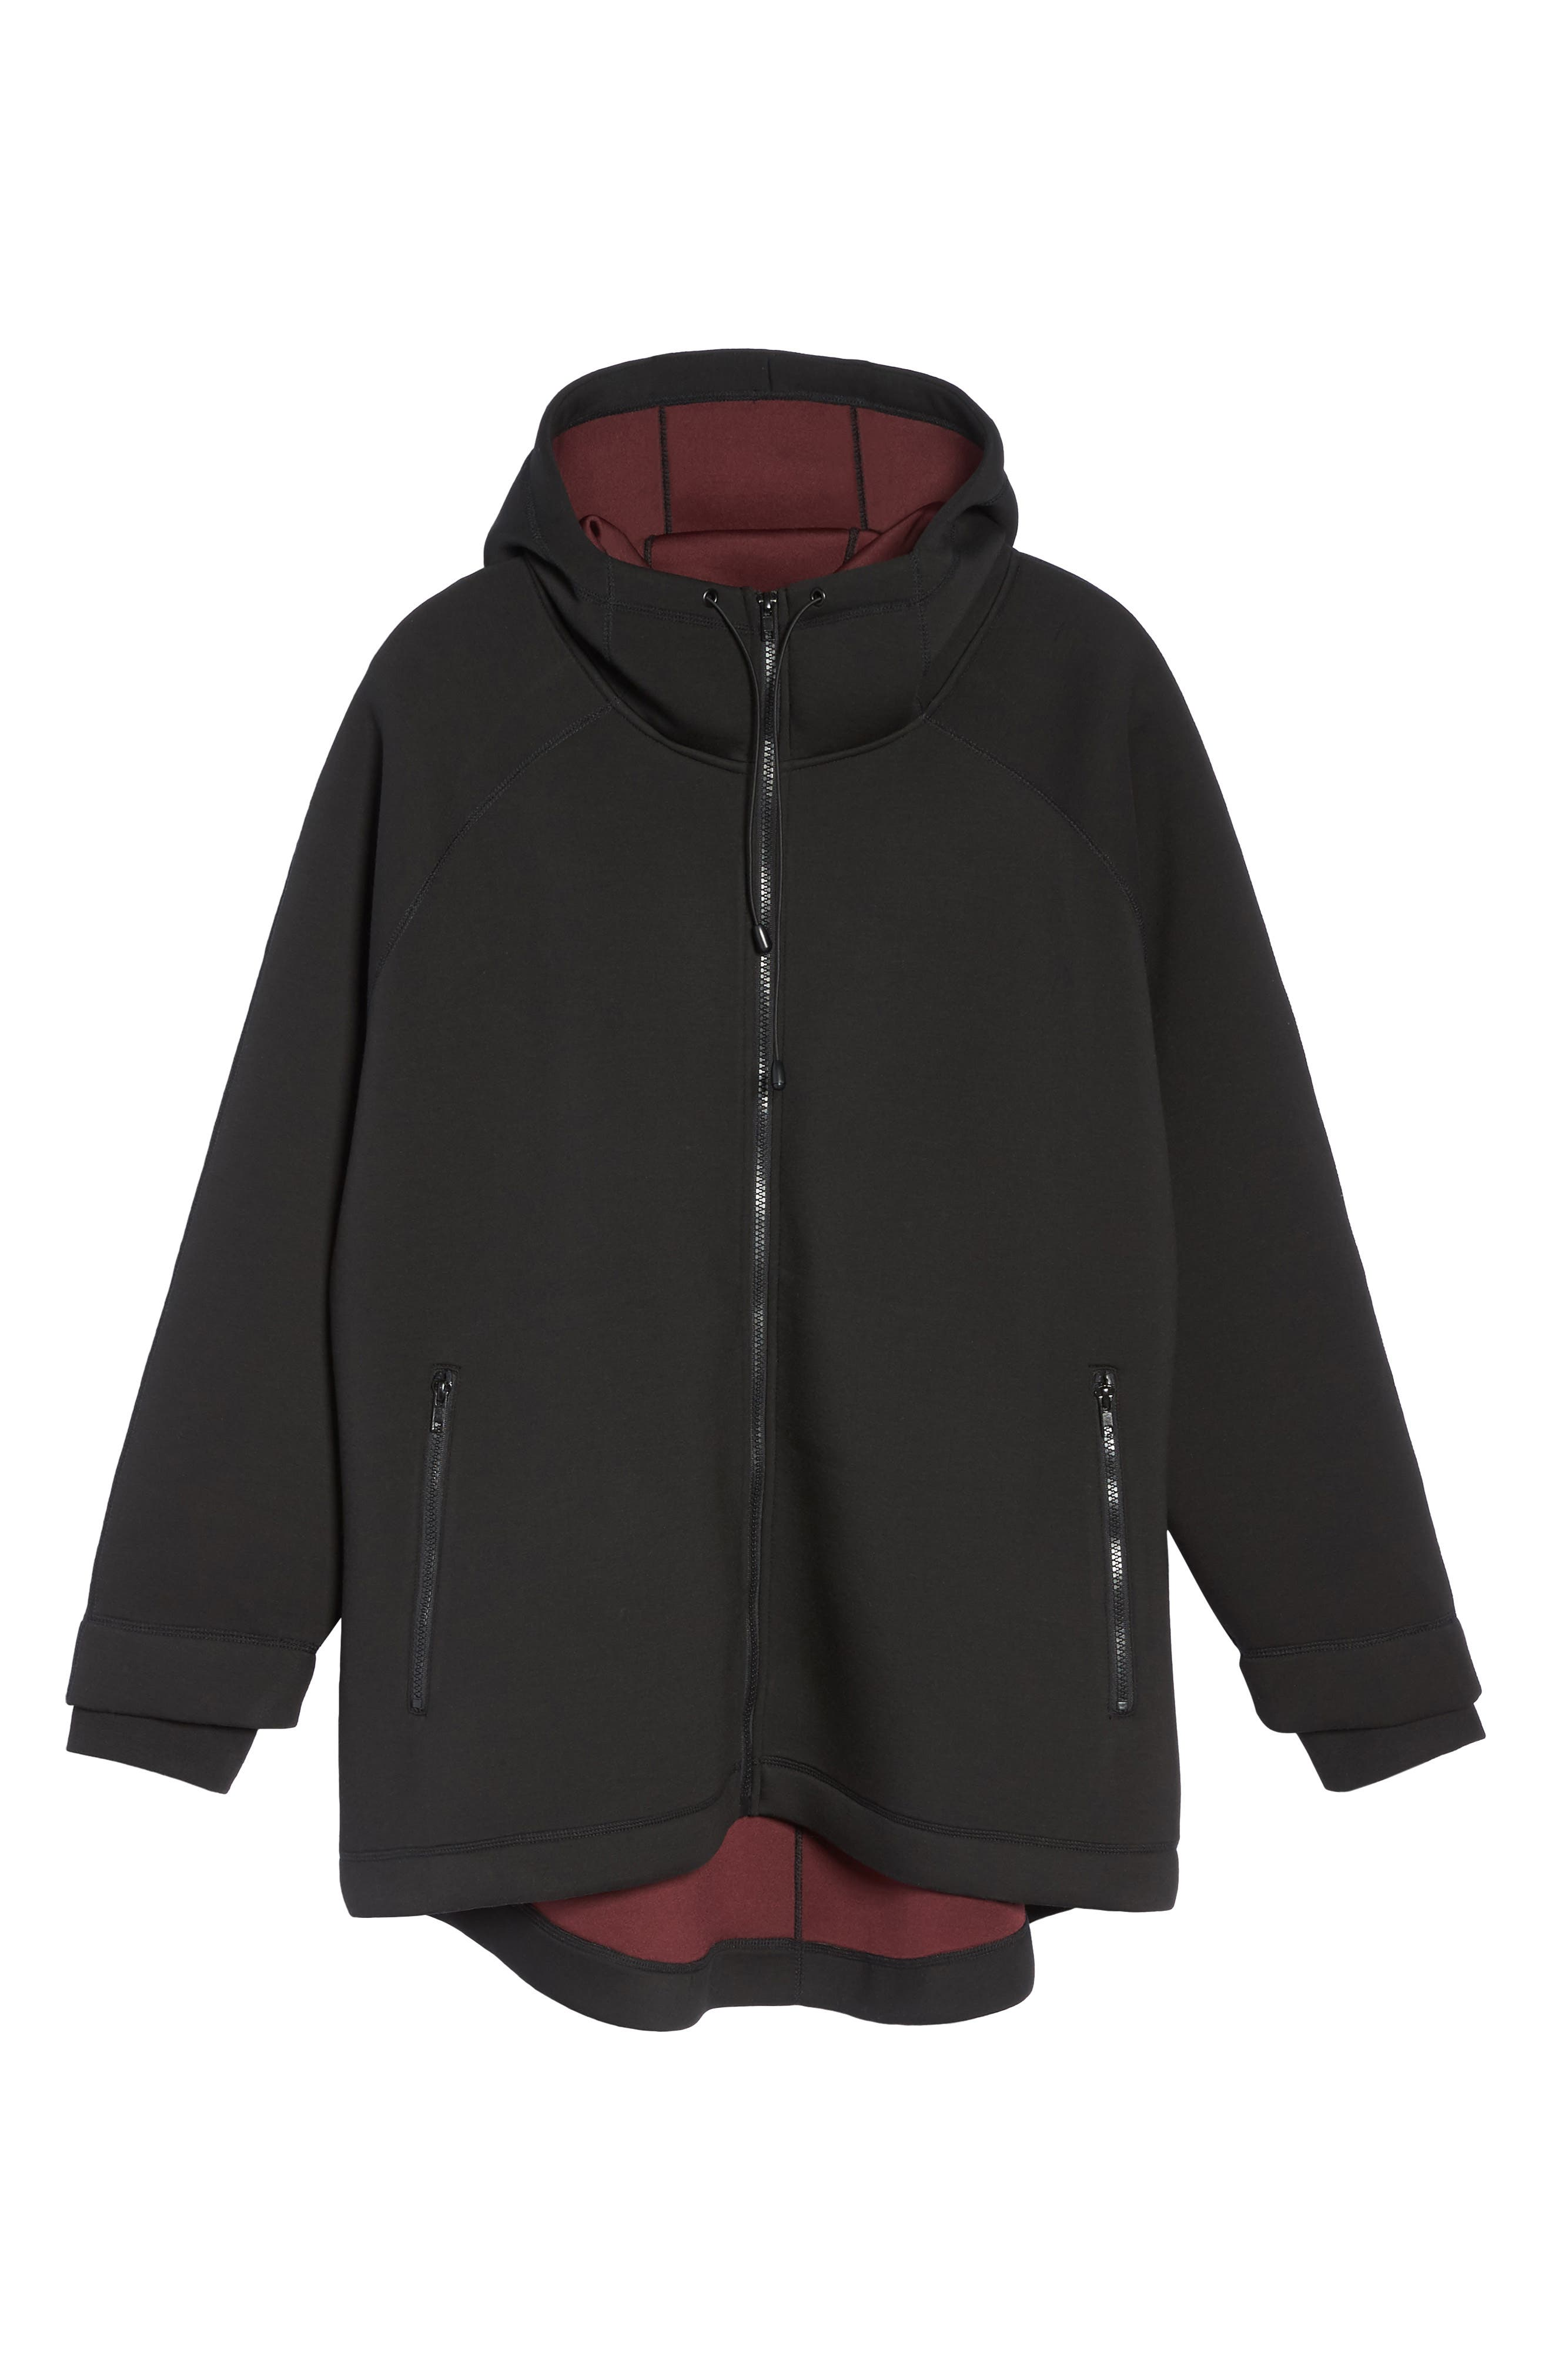 Mono Knit Drawstring Hooded Jacket,                             Alternate thumbnail 6, color,                             Black/ Burgundy